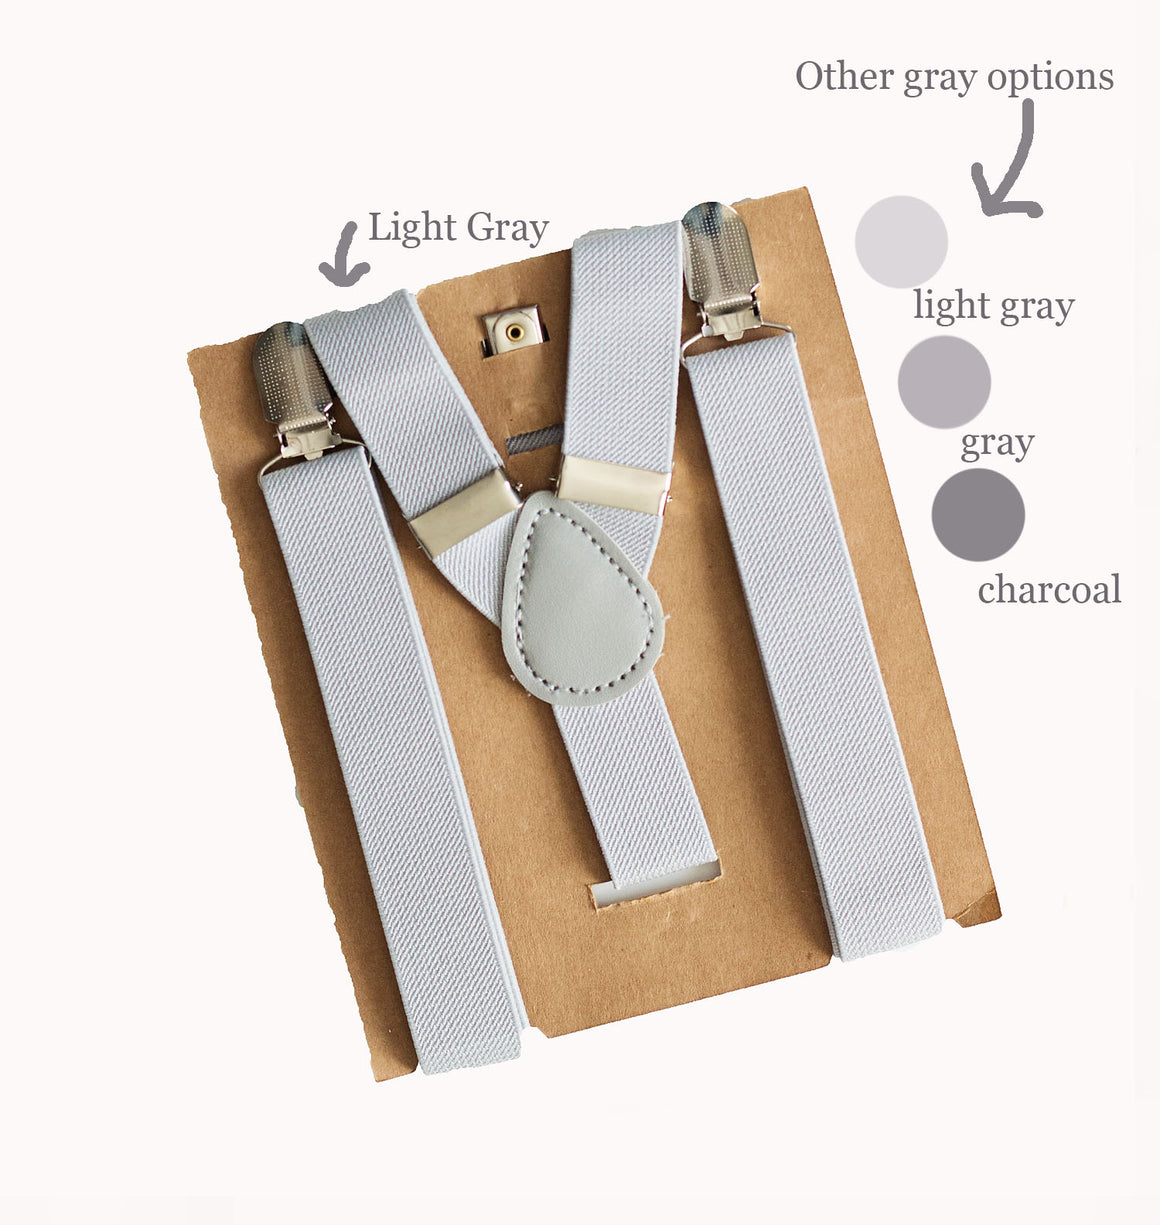 Light Gray Suspenders - Newborn to Adult sizes